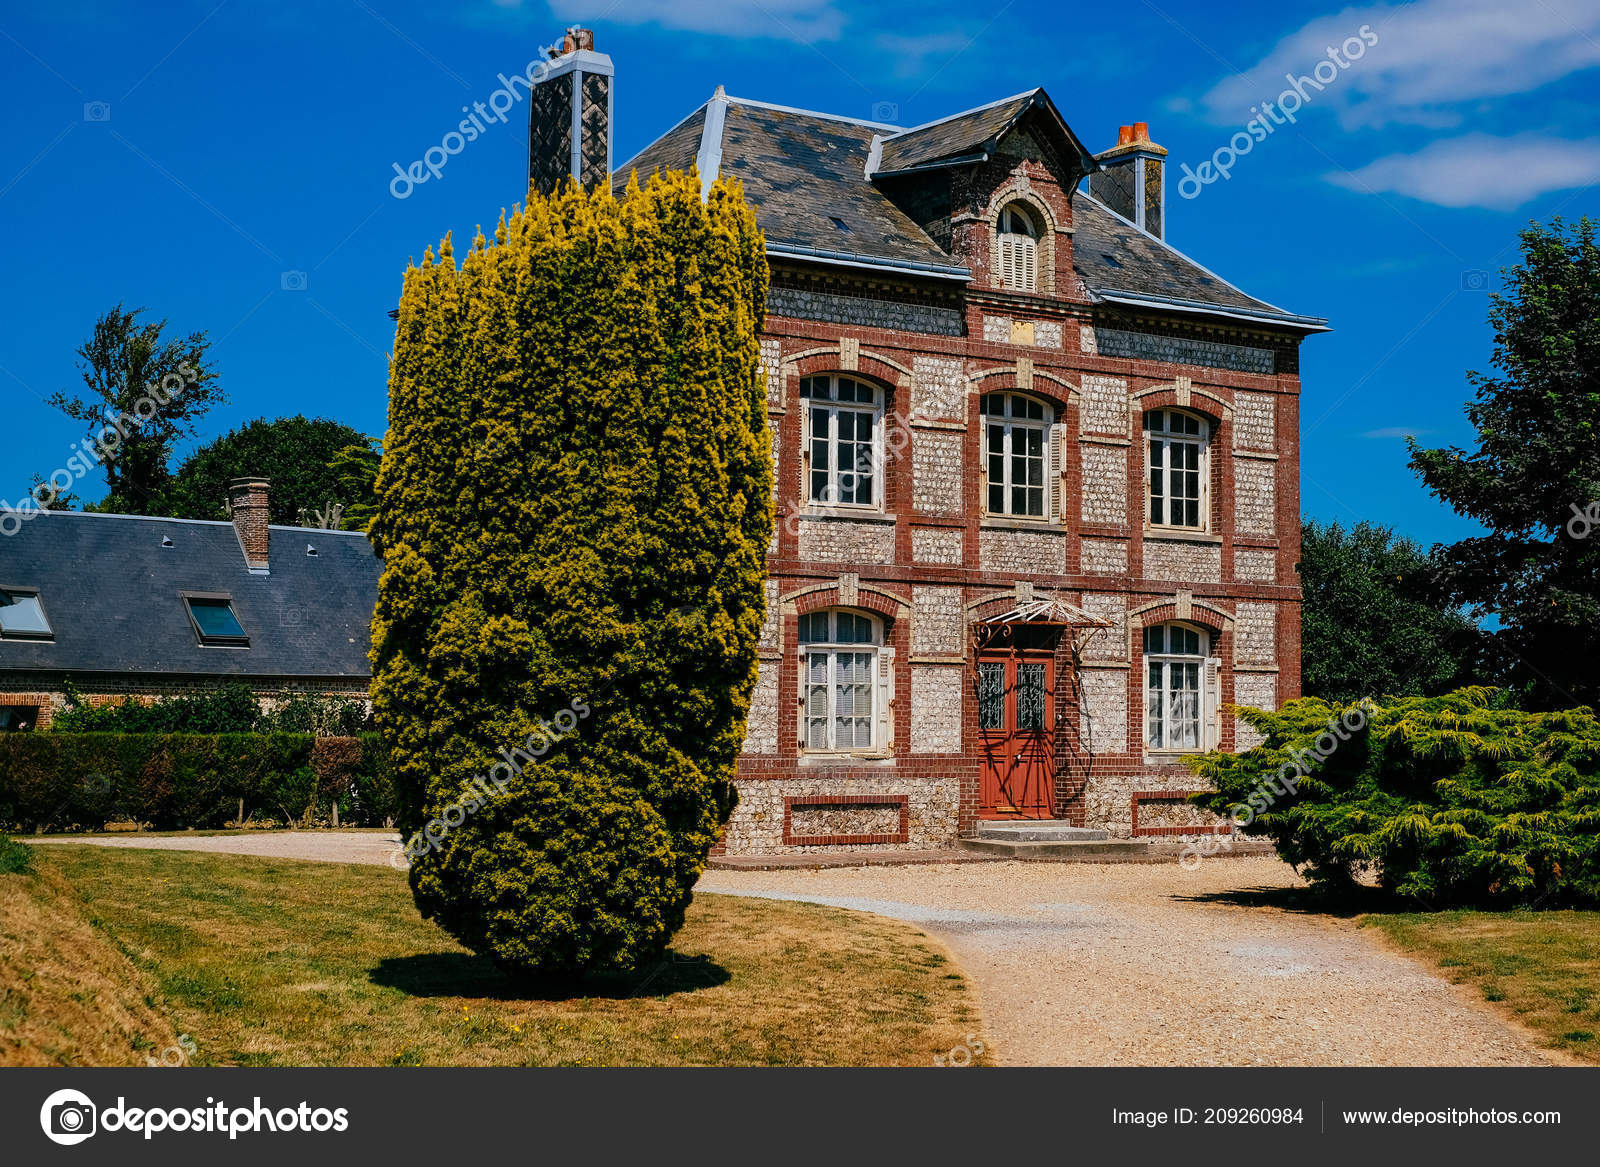 Romantic Industrial Houses City Yport Habour Normandy Cloudy Sky Stock Editorial Photo C Manovankohr 209260984